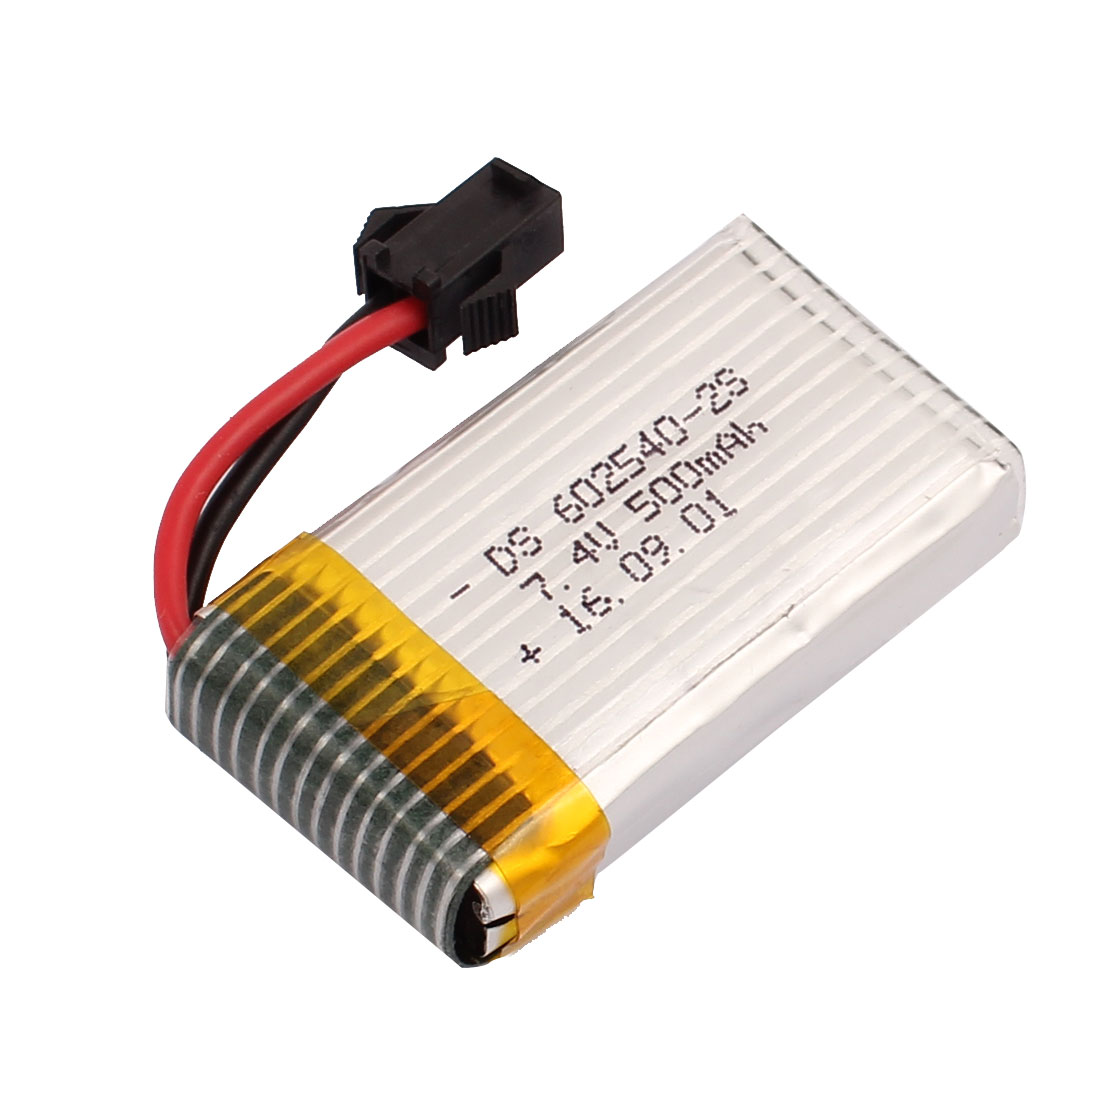 7.4V 500mAh Charging Lithium Polymer Li-po Battery SM-2P Connector for RC Airplane Aircraft